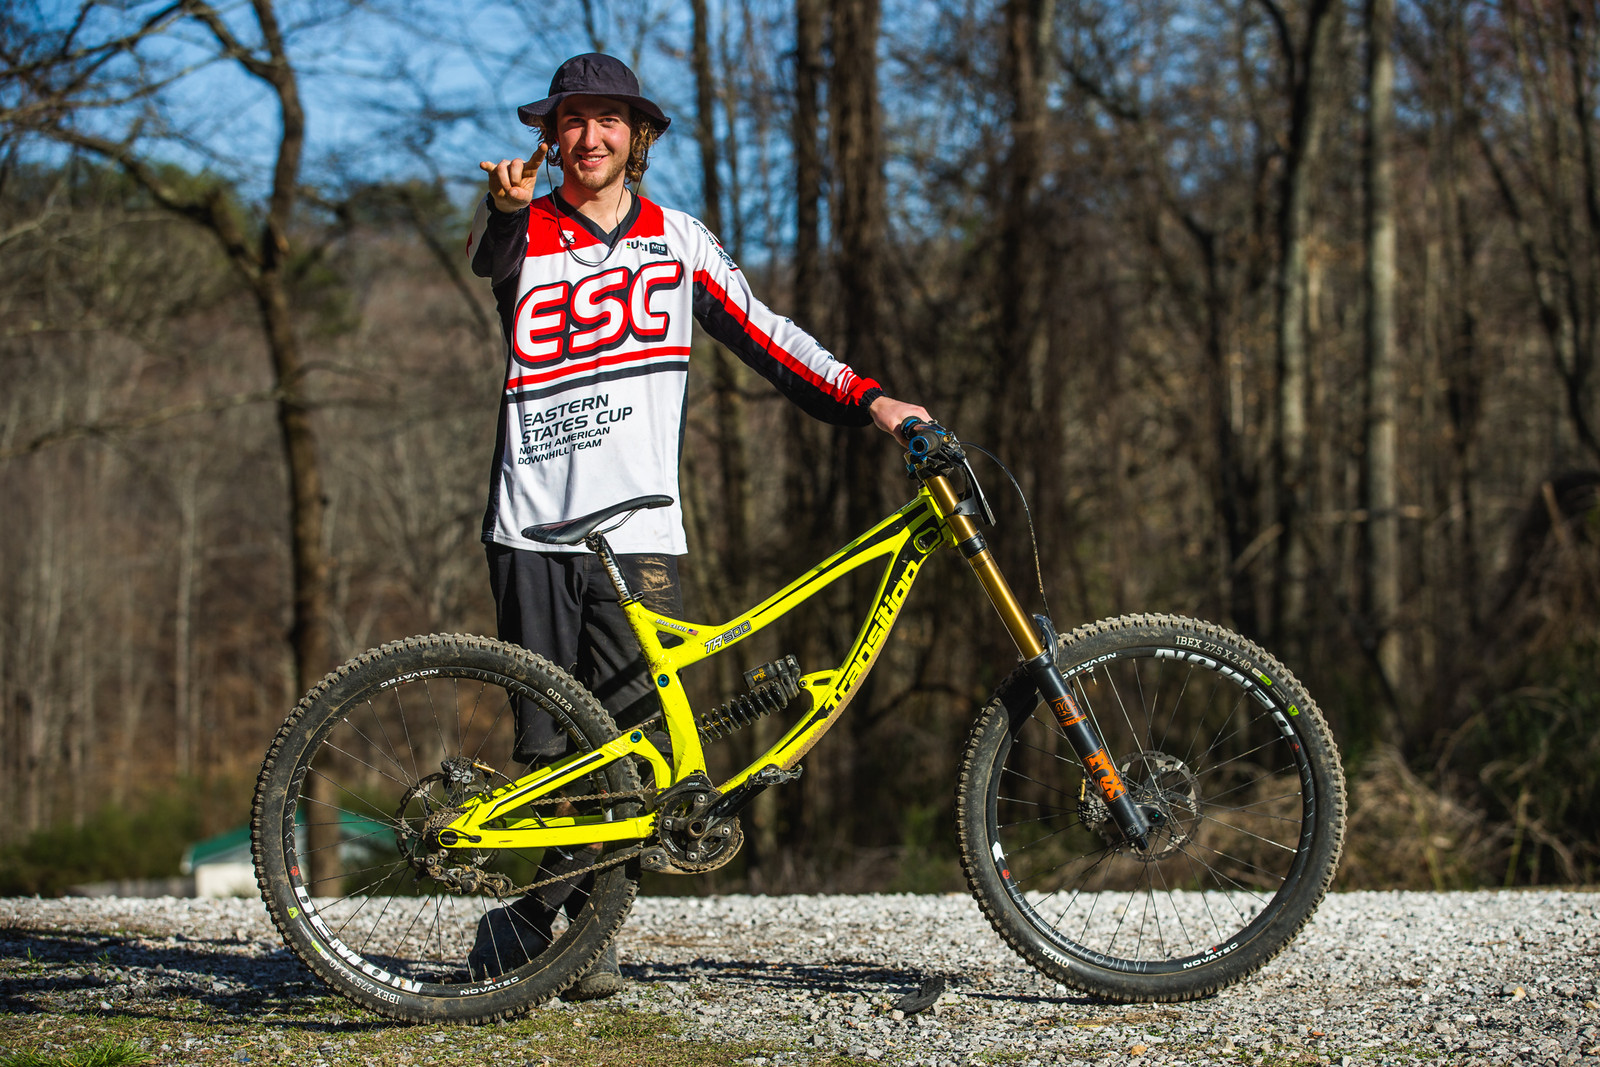 Pro GRT Pro Bike - Aidan Casner's Transition TR500 - Pro Bikes from Windrock Pro GRT - Mountain Biking Pictures - Vital MTB